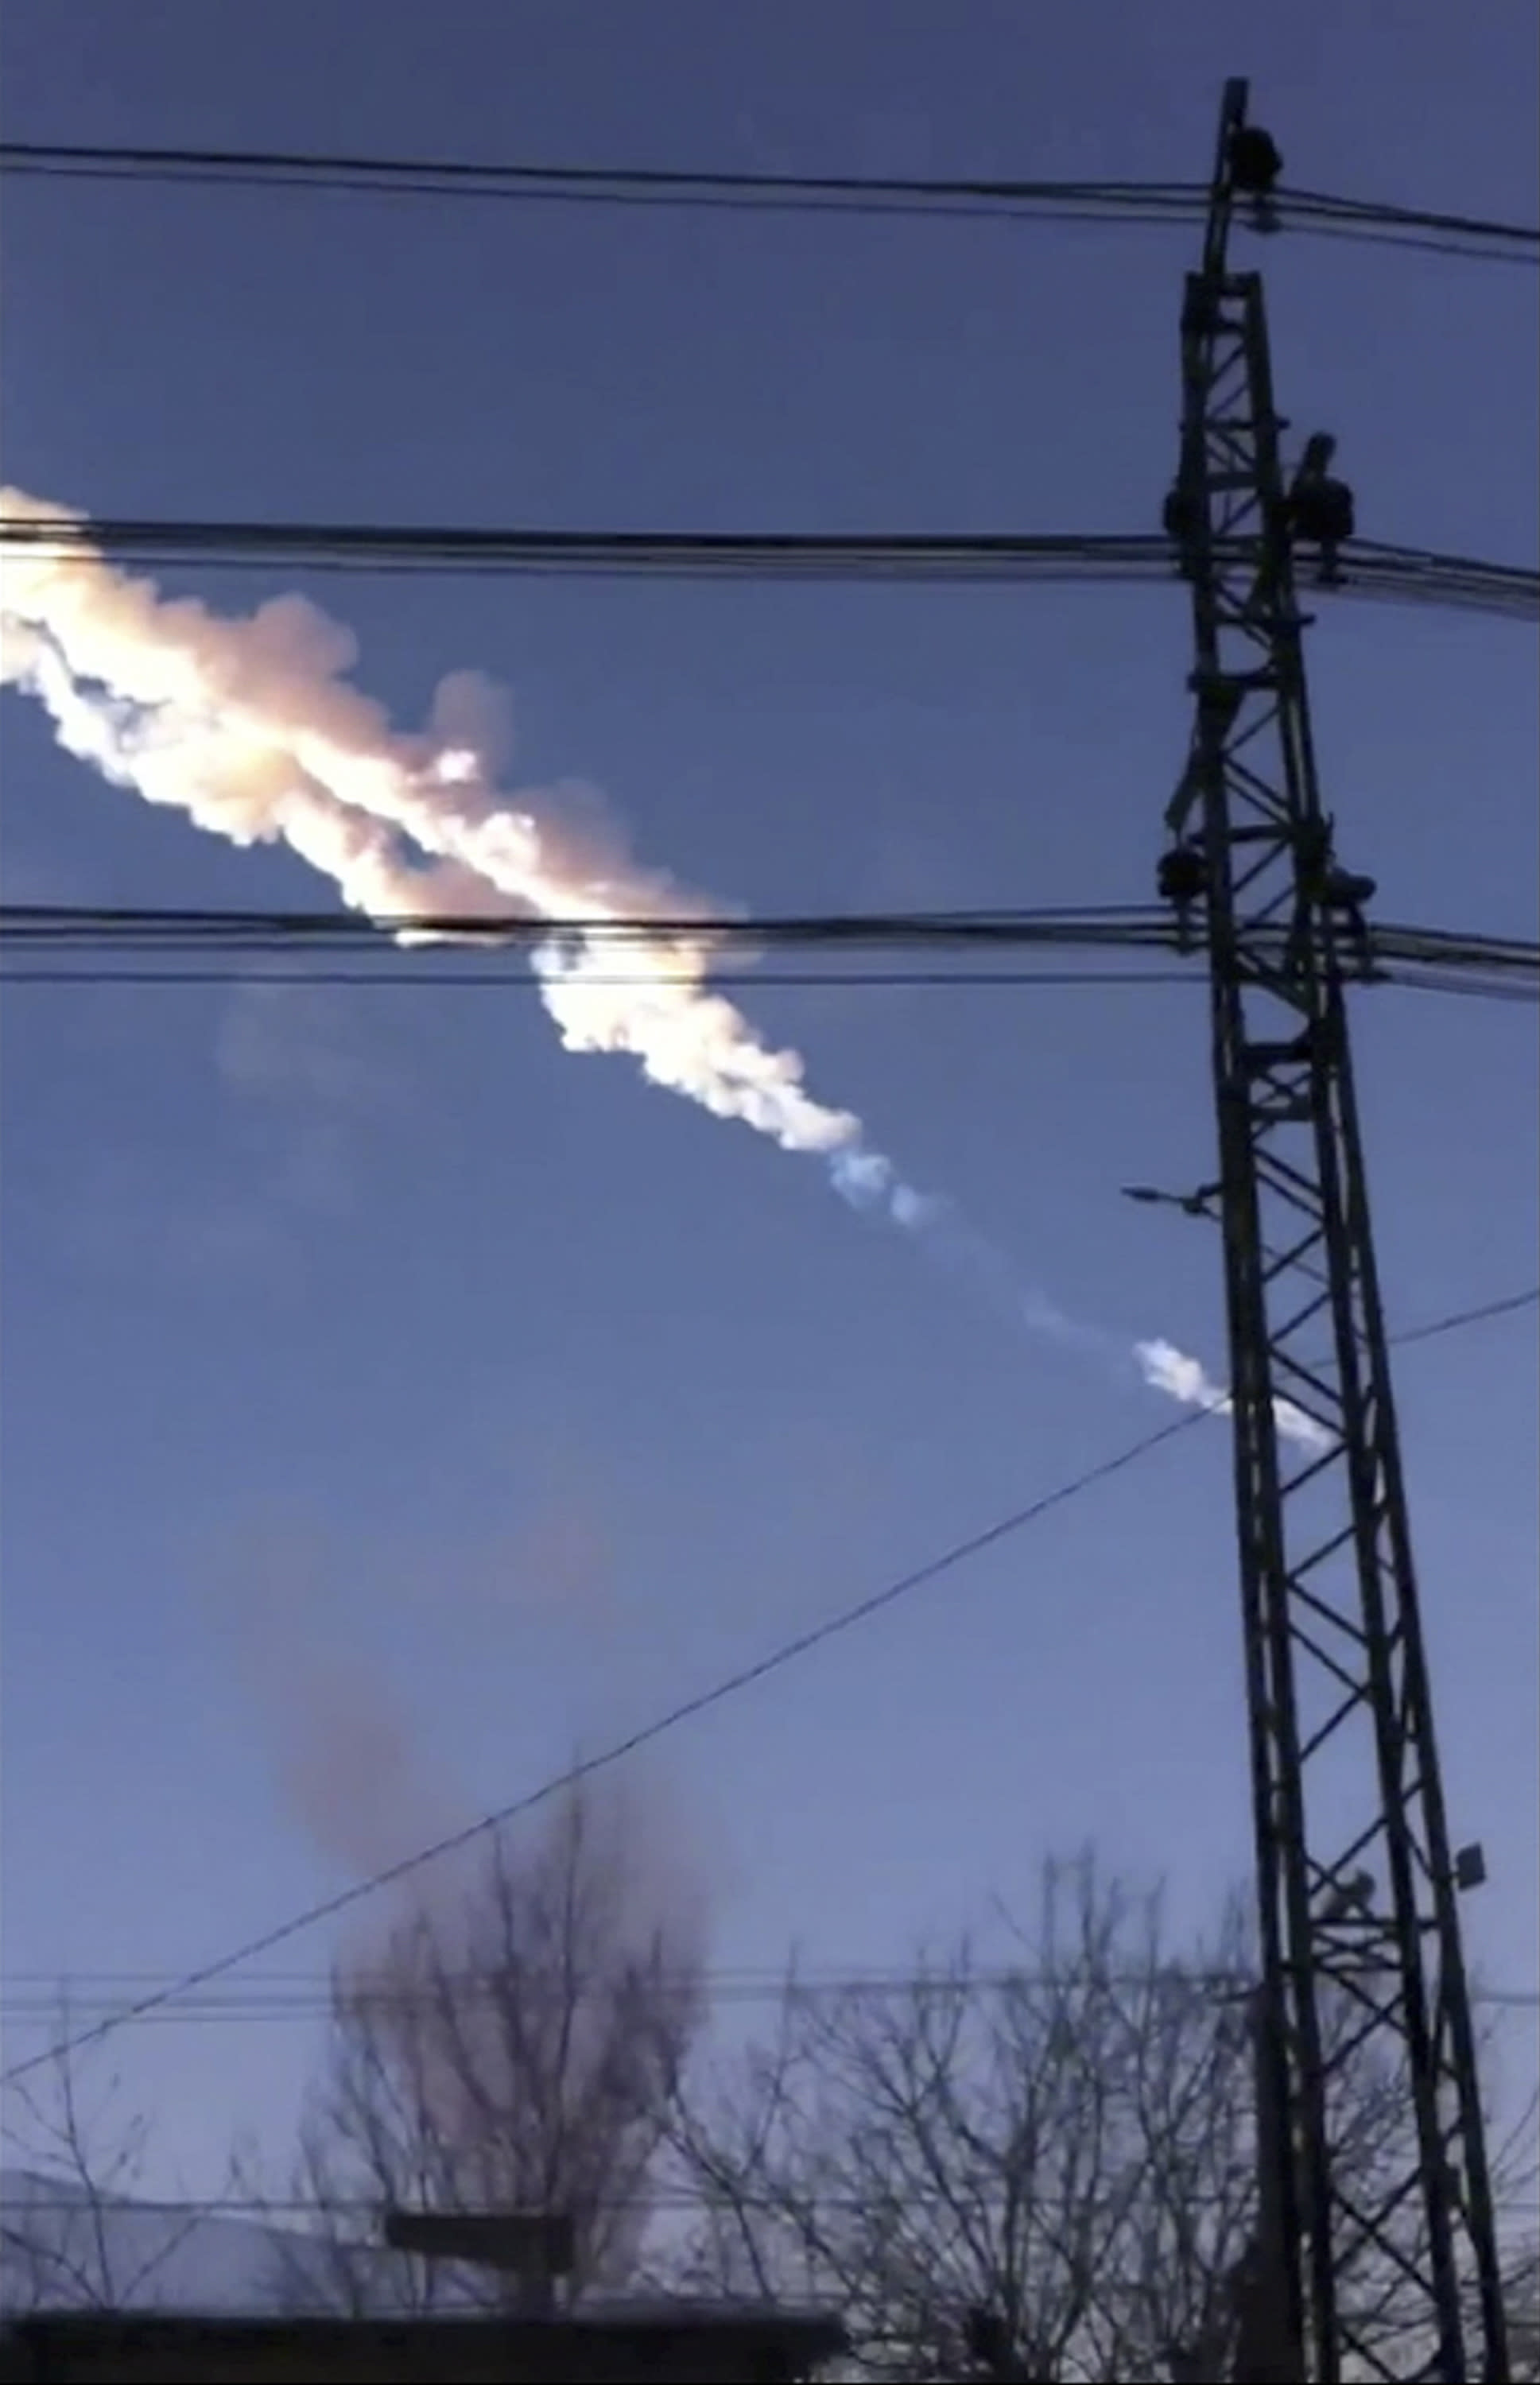 In this photo taken with a mobile phone camera, a meteorite contrail is seen in Chelyabinsk region on Friday, Feb. 15, 2013. A meteor streaked across the sky of Russia's Ural Mountains on Friday morning, causing sharp explosions and reportedly injuring around 100 people, including many hurt by broken glass. (AP Photo/Sergey Hametov)